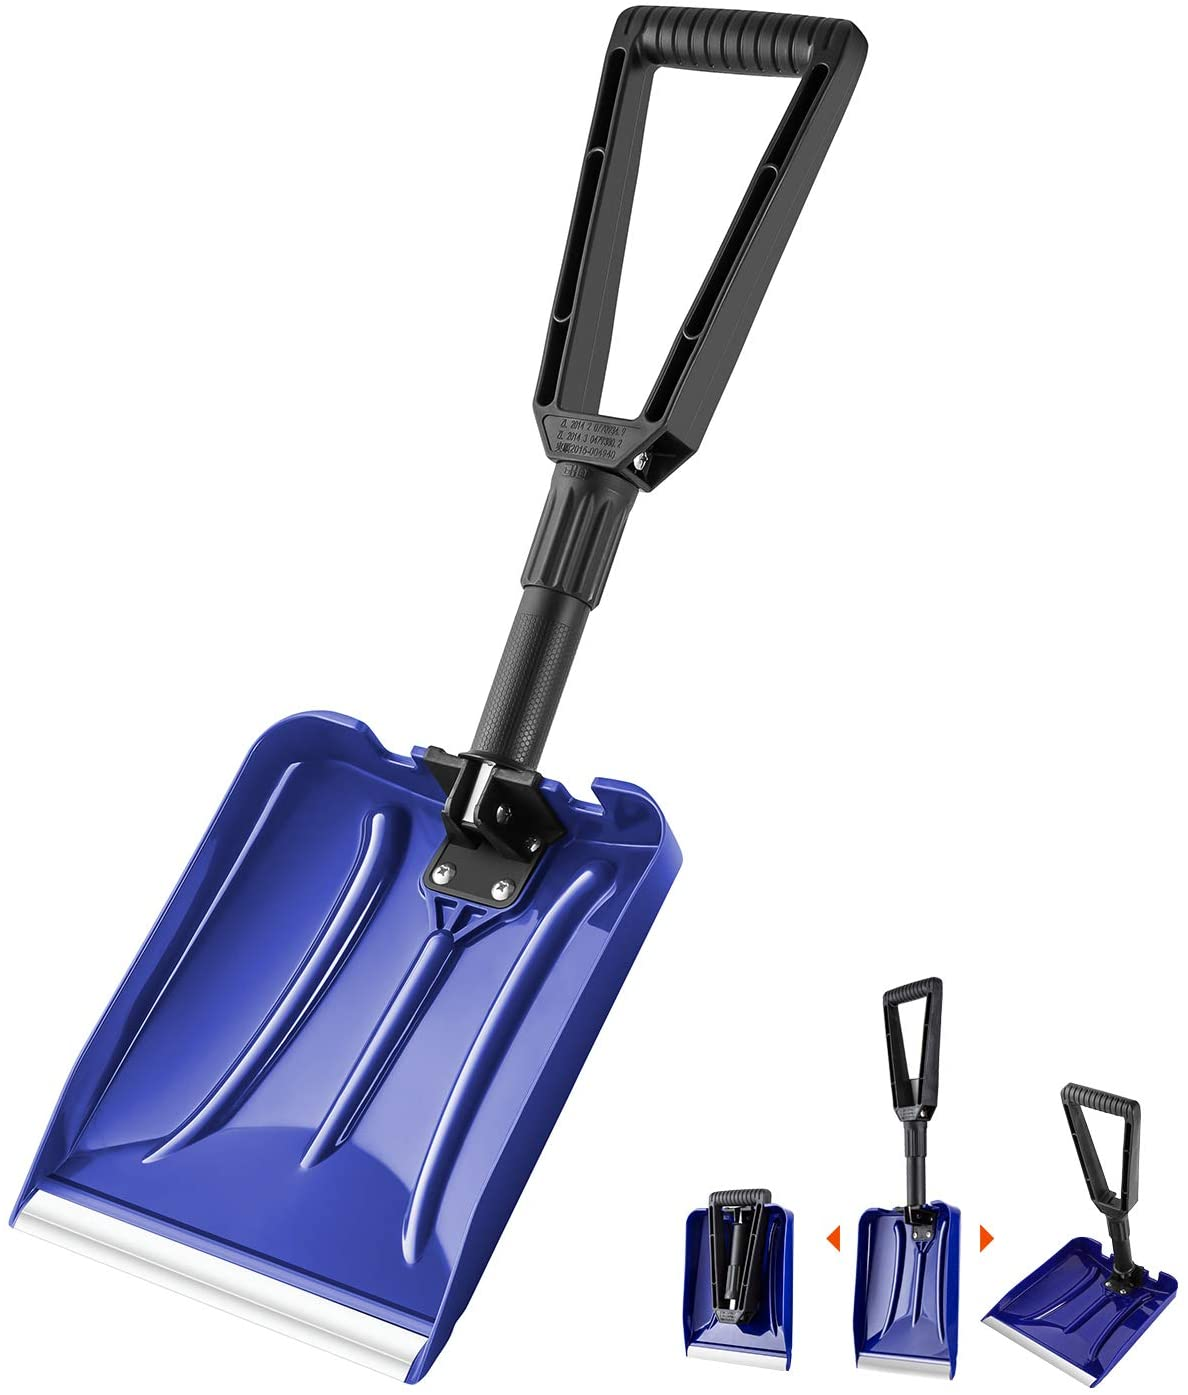 a collapsible shovel is shown at full length and also broken down for easier storage